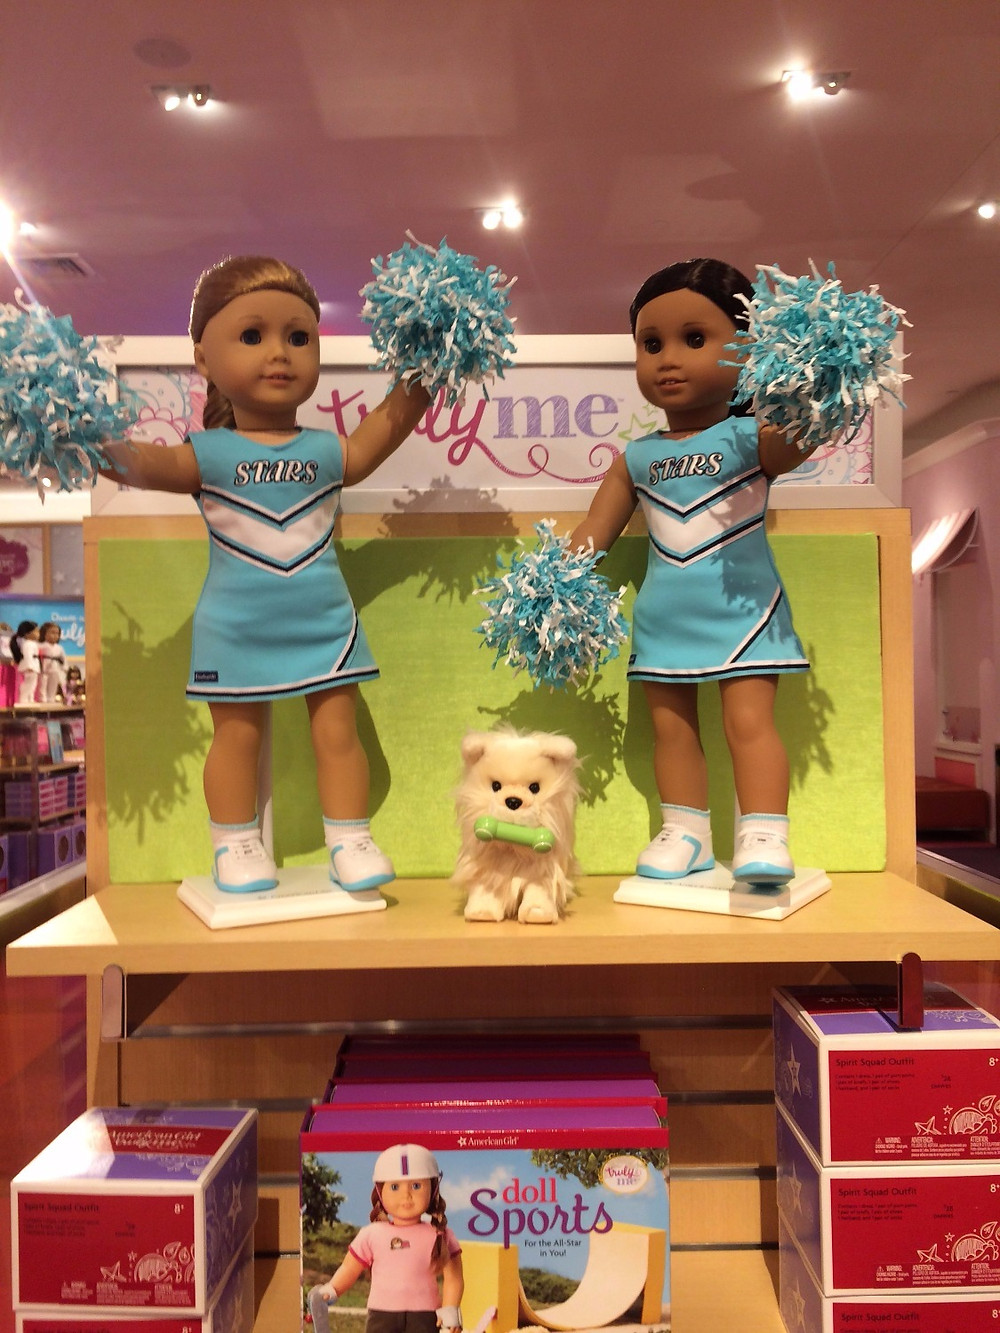 This display shows off the new Spirit Squad Outfit from American Girl ($28). It is shown on #33 and #62. In the middle is the pomperanian puppy that was sold at Costco exclusively and got released on it's own last week. The picture also has the new Doll Sports book in the front.